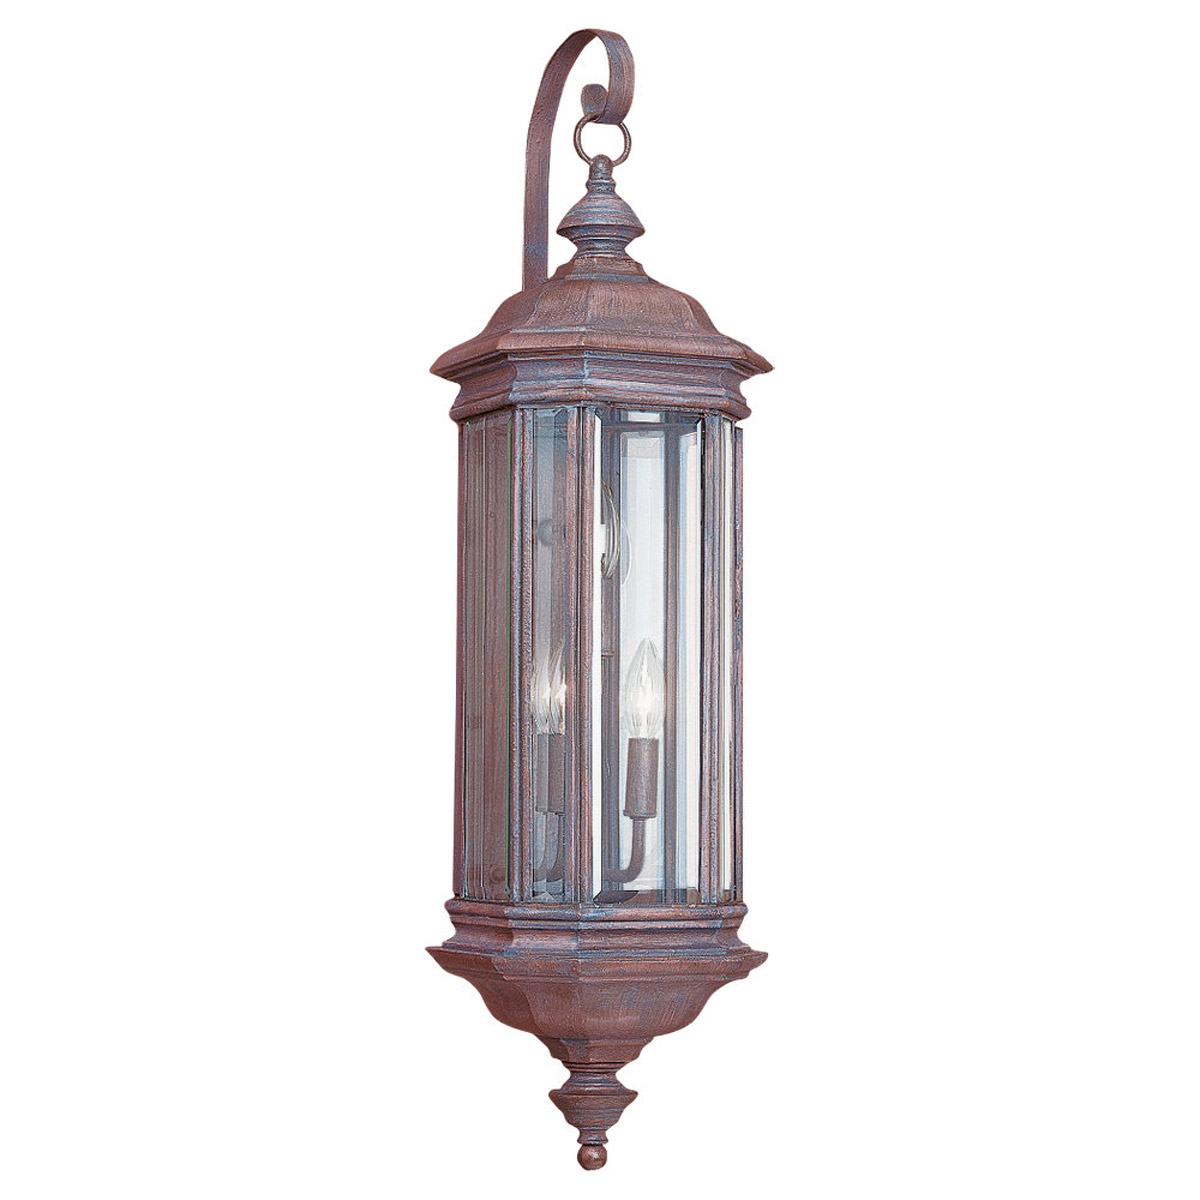 Sea Gull Lighting Hill Gate 3 Light Outdoor Wall Lantern in Textured Rust Patina 8842-08 photo